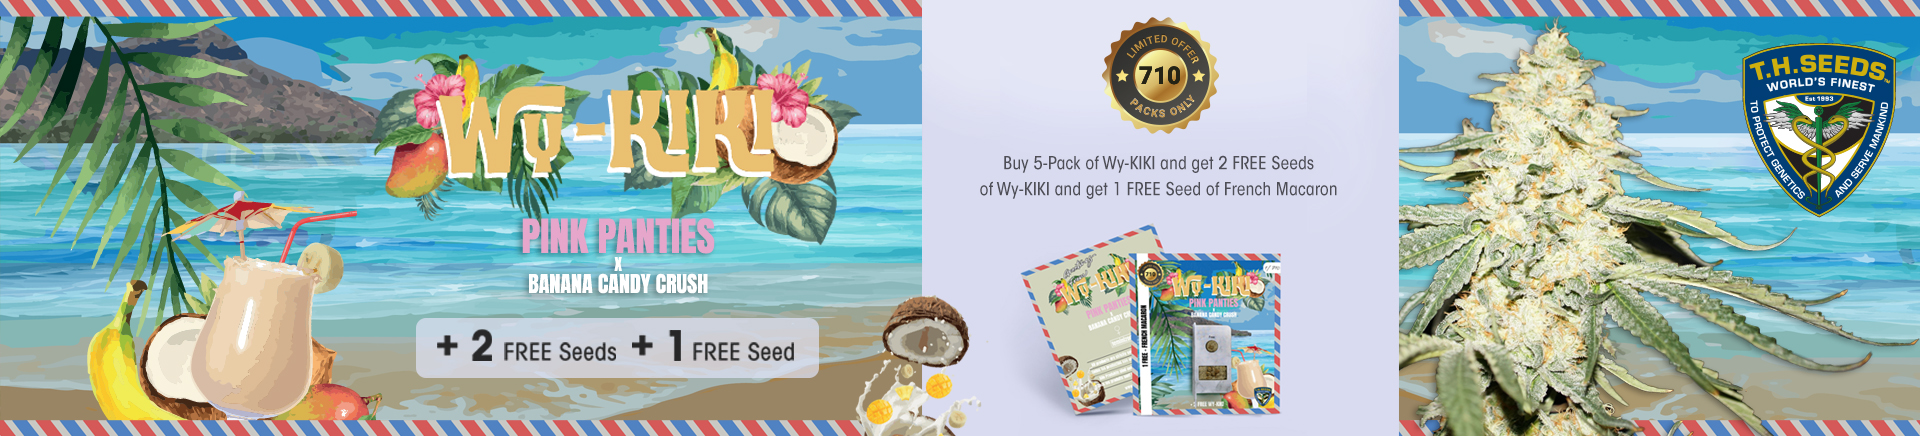 Wy-Kiki TH. Seeds new special release promo